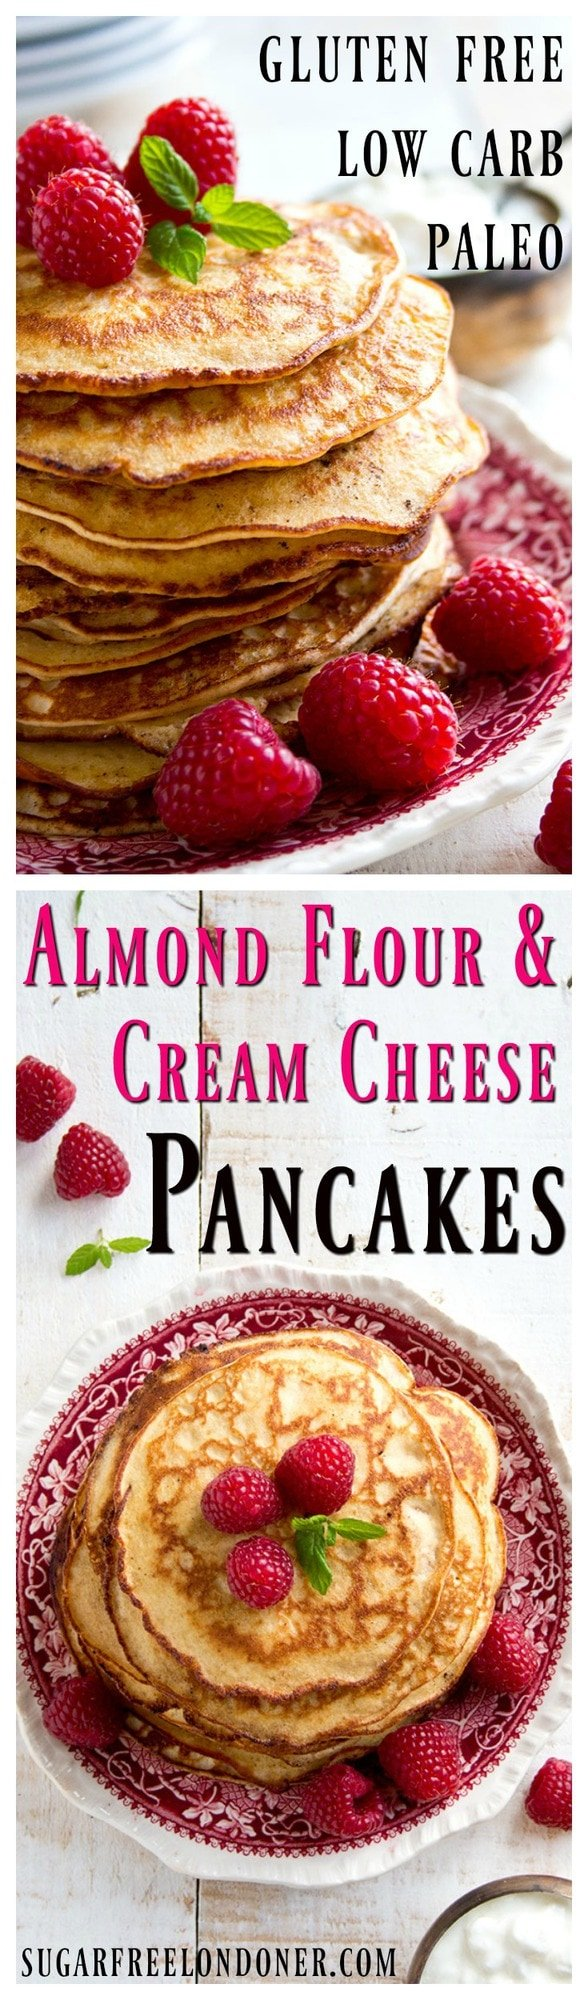 Light and fluffy pancakes that are low carb, gluten free and so easy to make: These Almond Cream Cheese Pancakes are a healthy sugar free breakfast choice. #pancakes #lowcarb #glutenfree #sugarfree #keto #breakfast